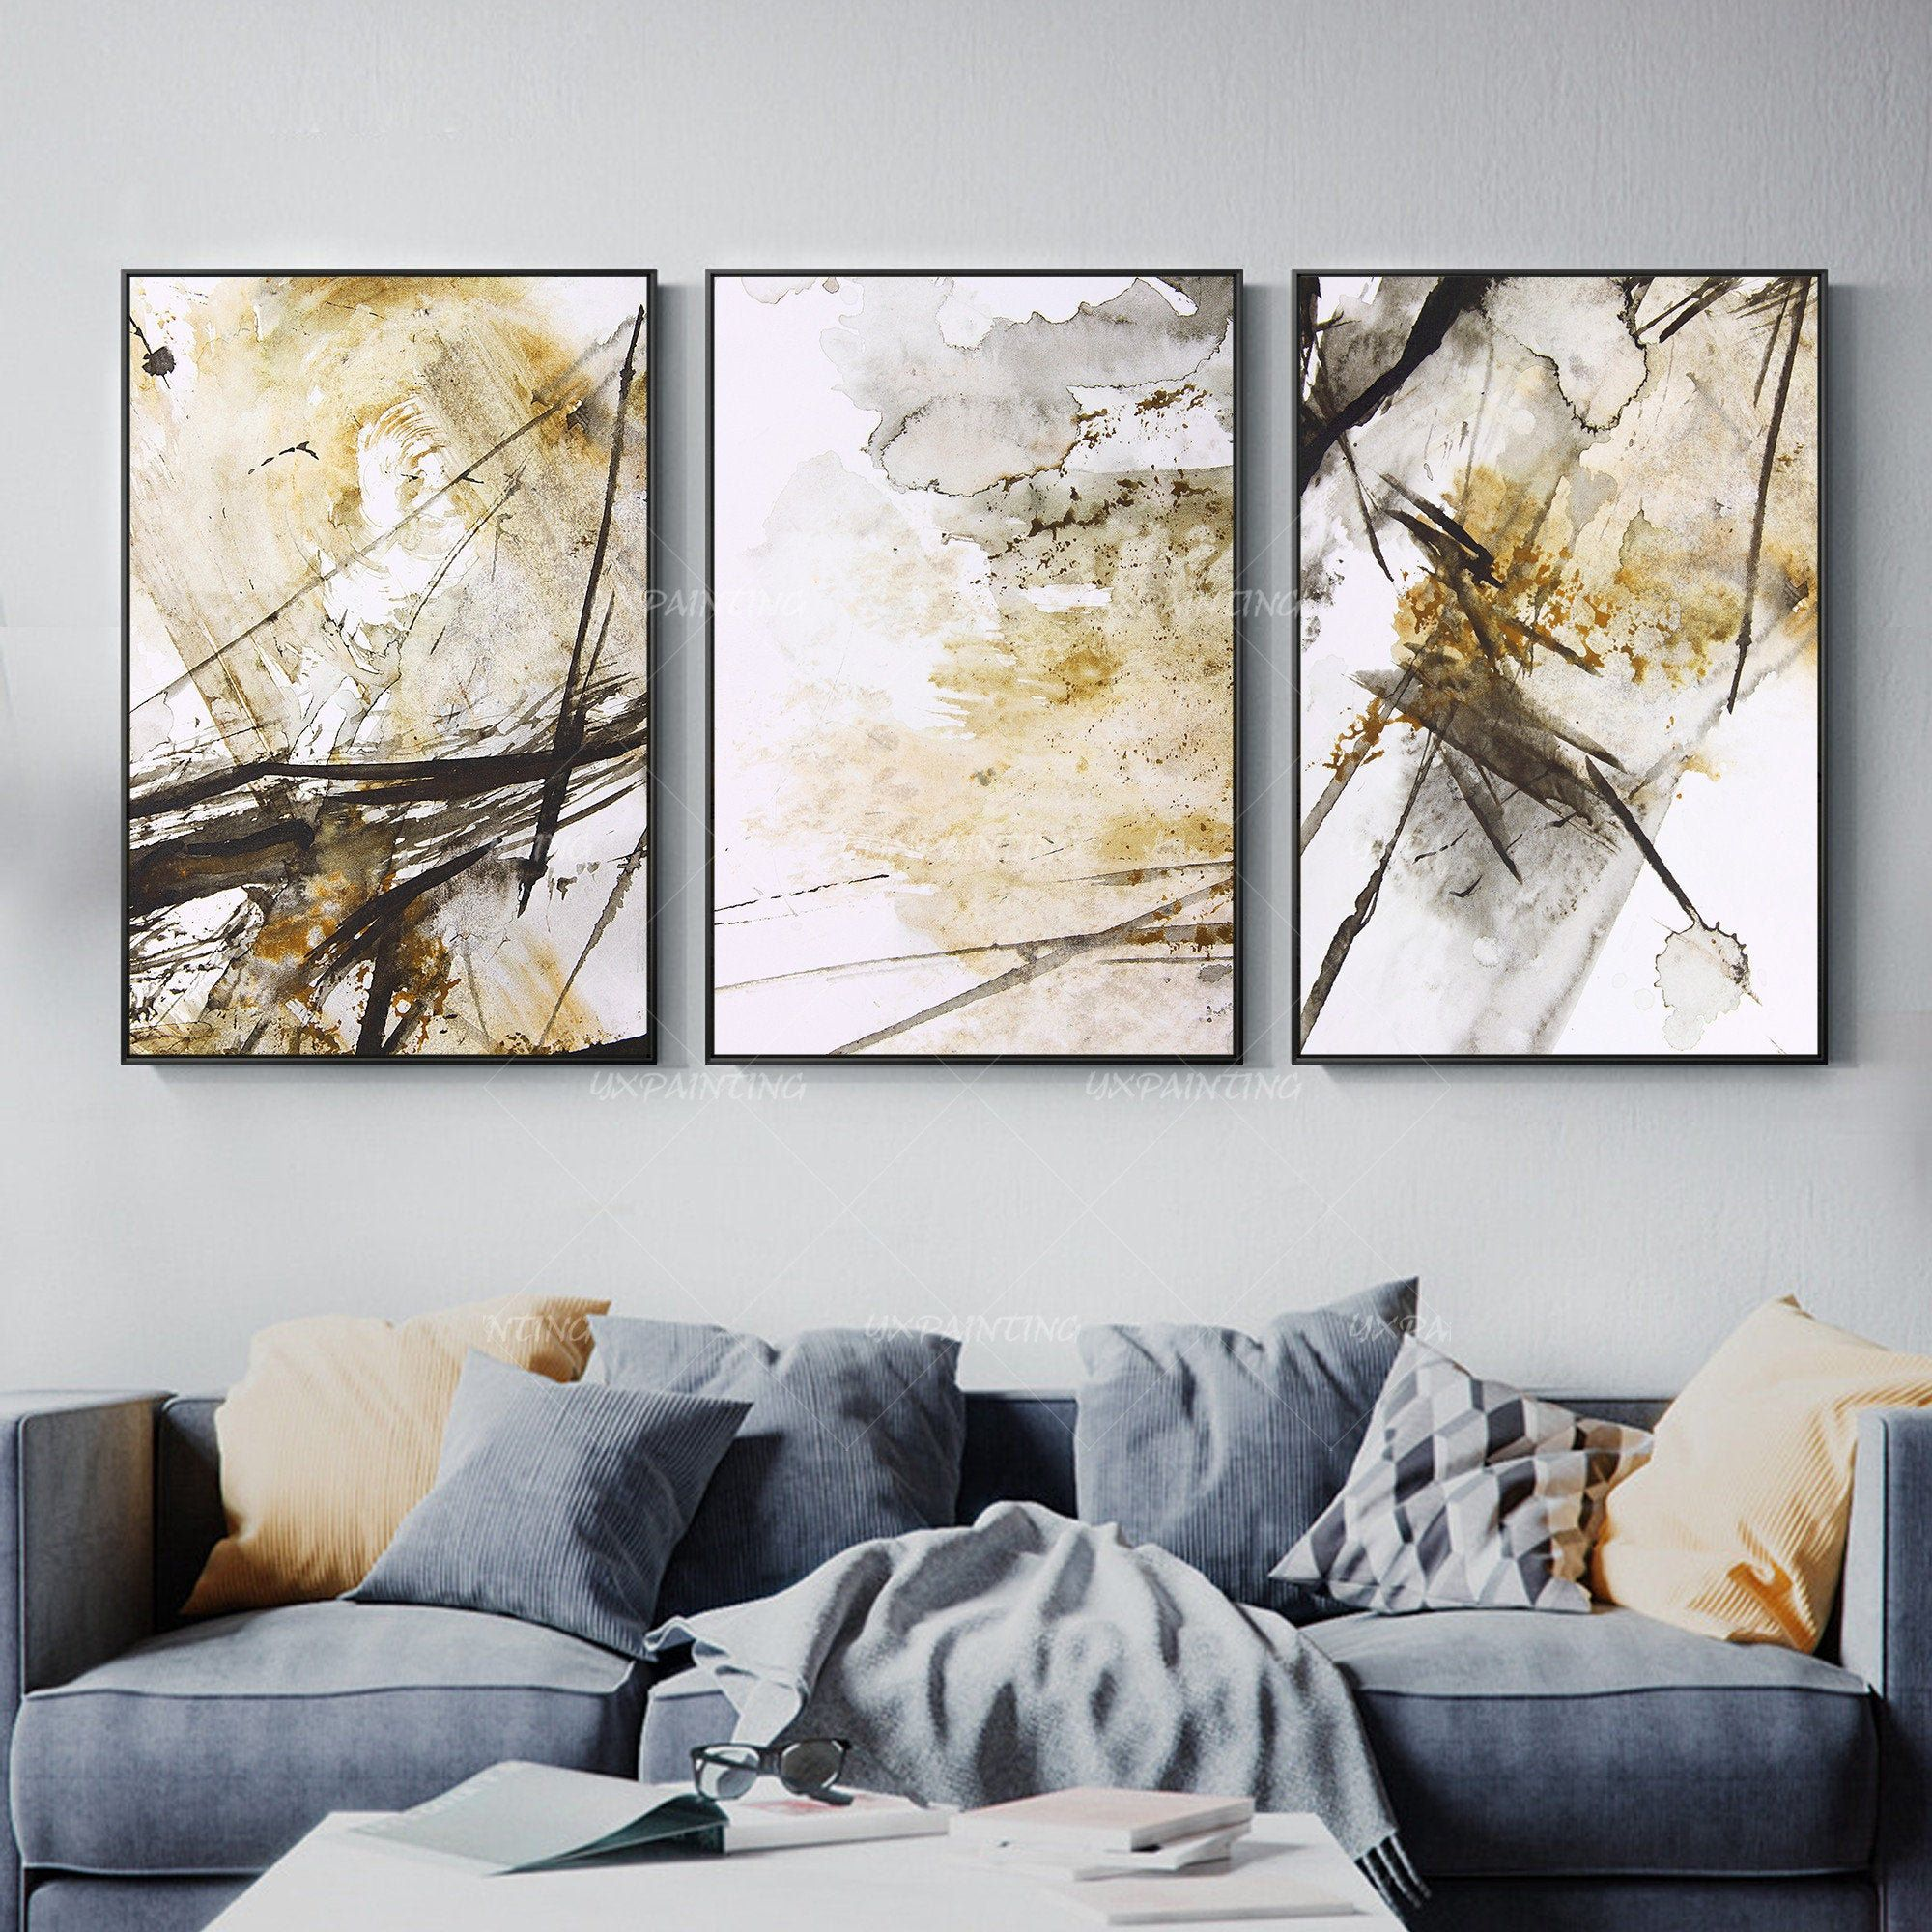 3 Pieces Wall Art Abstract Print Art Painting Set Of 3 Wall Etsy Large Abstract Painting 3 Piece Wall Art Painting Frames